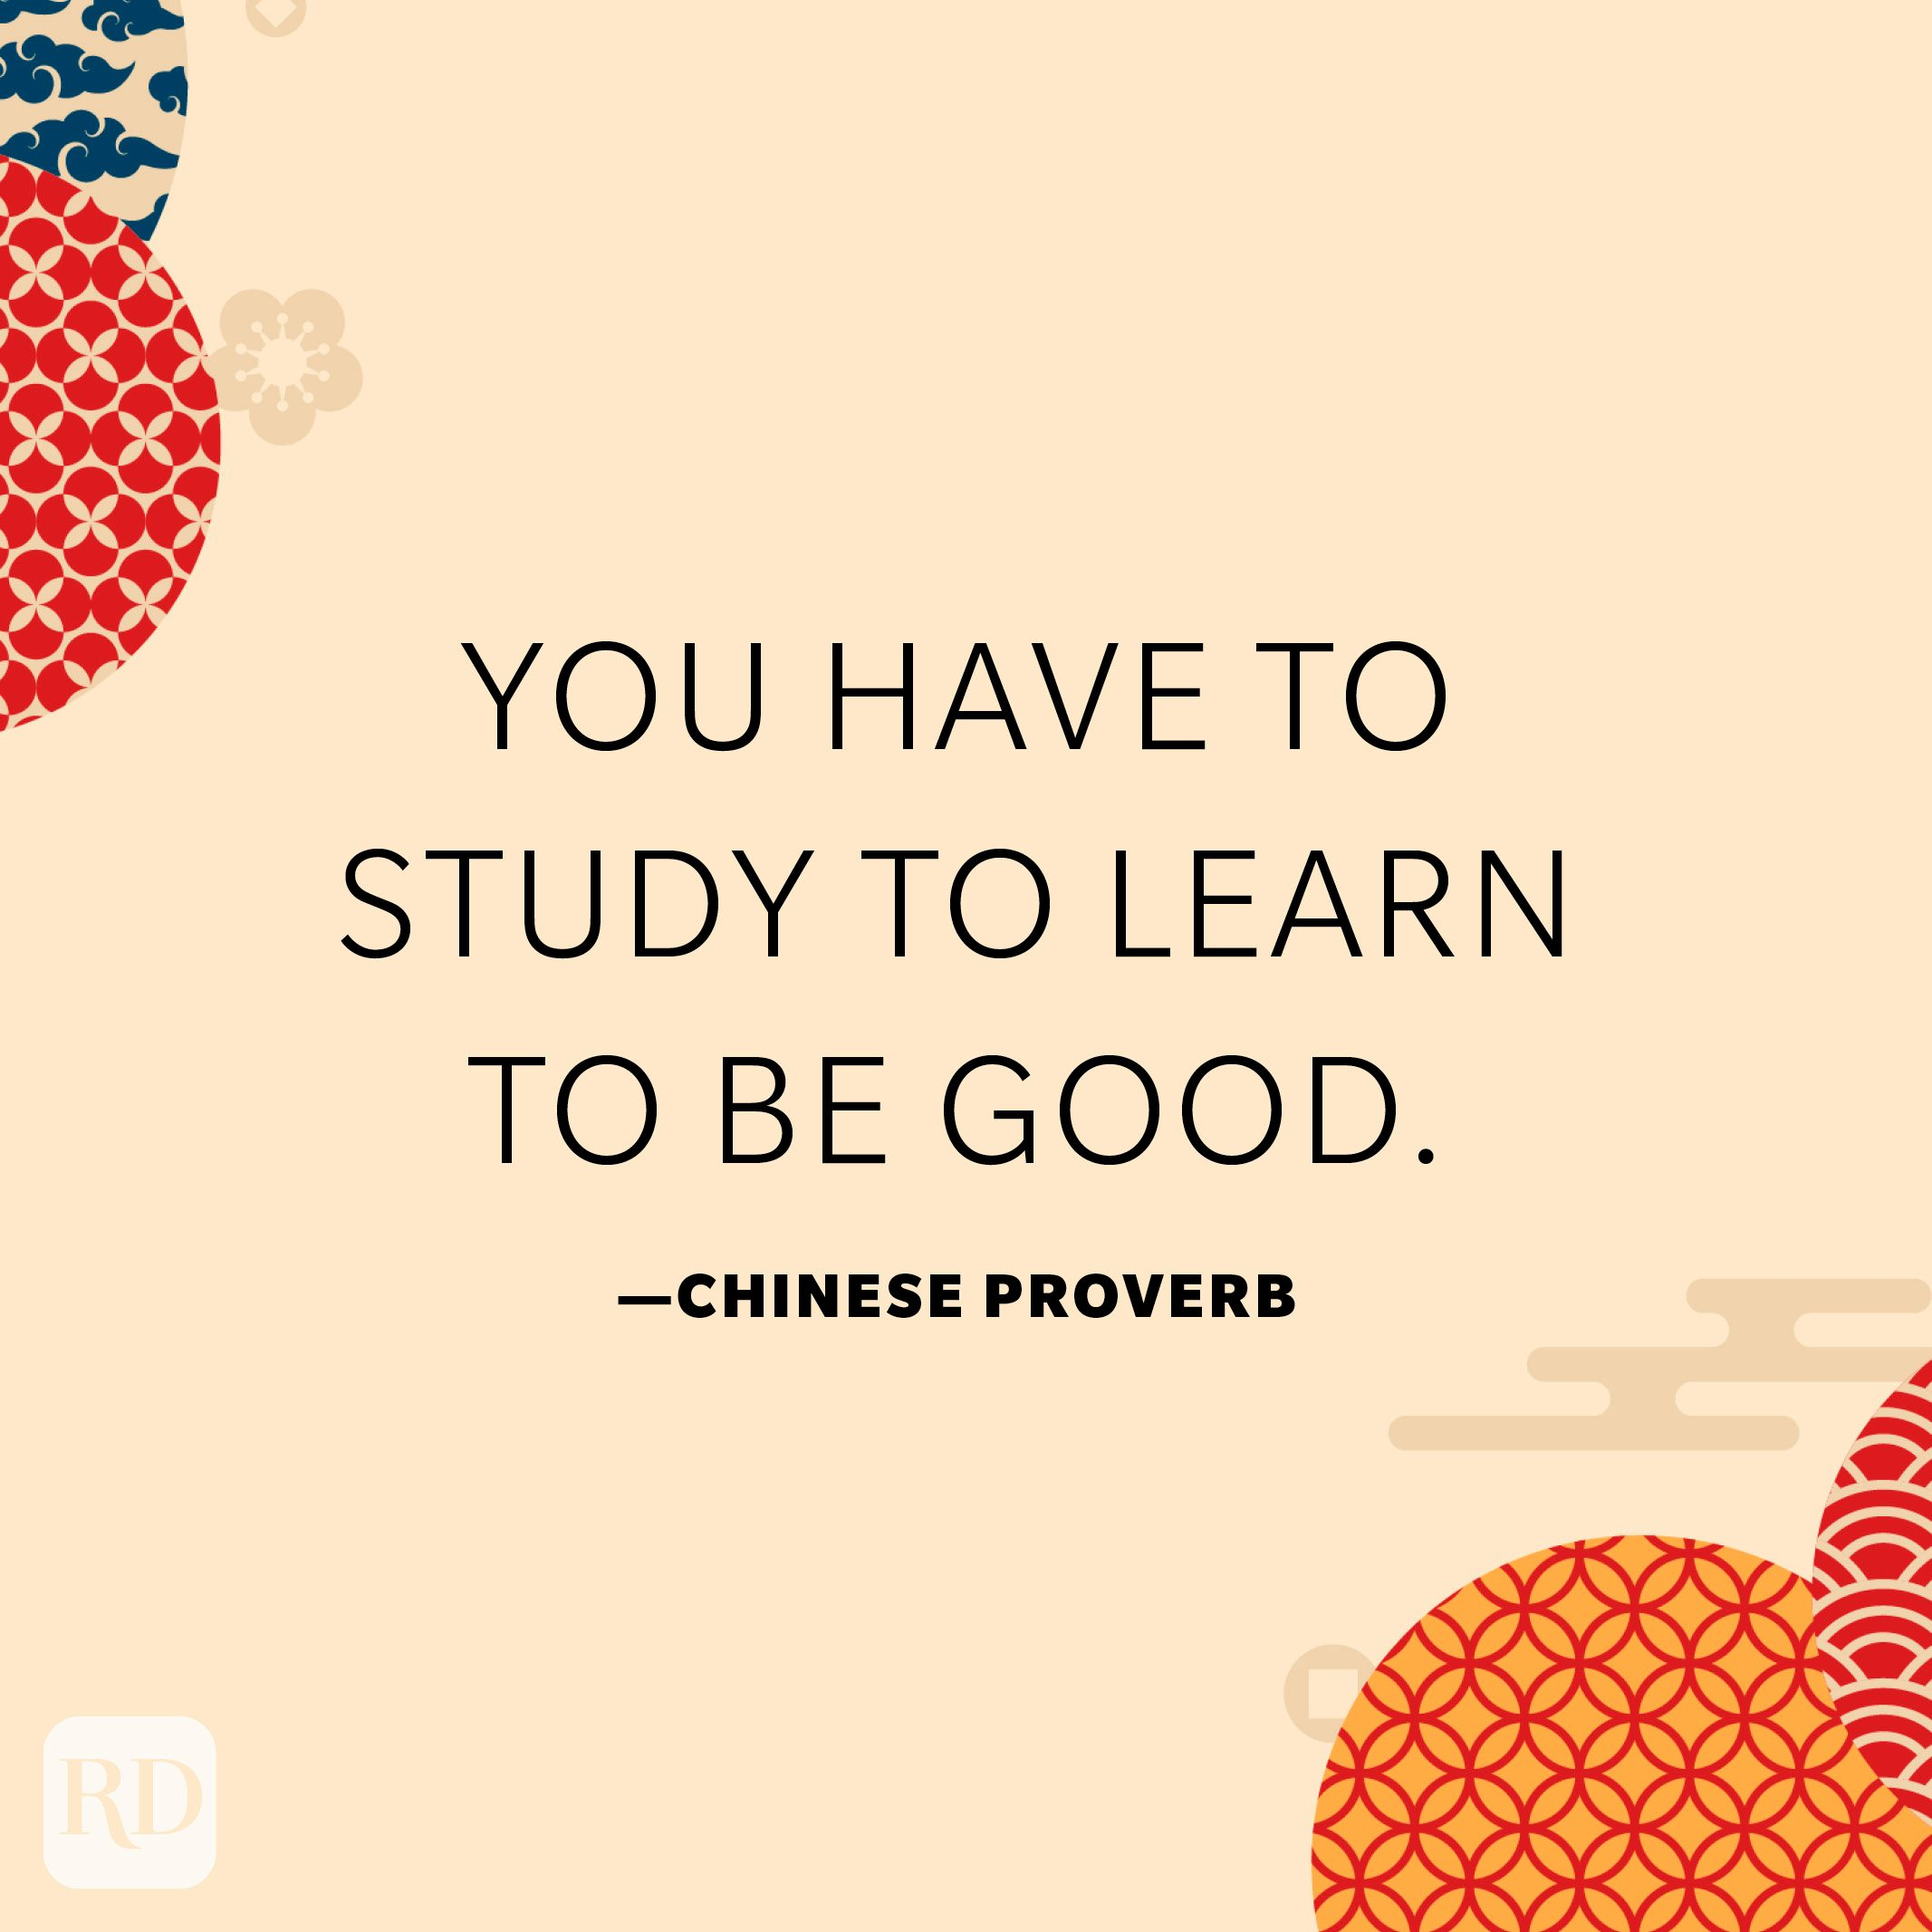 You have to study to learn to be good.